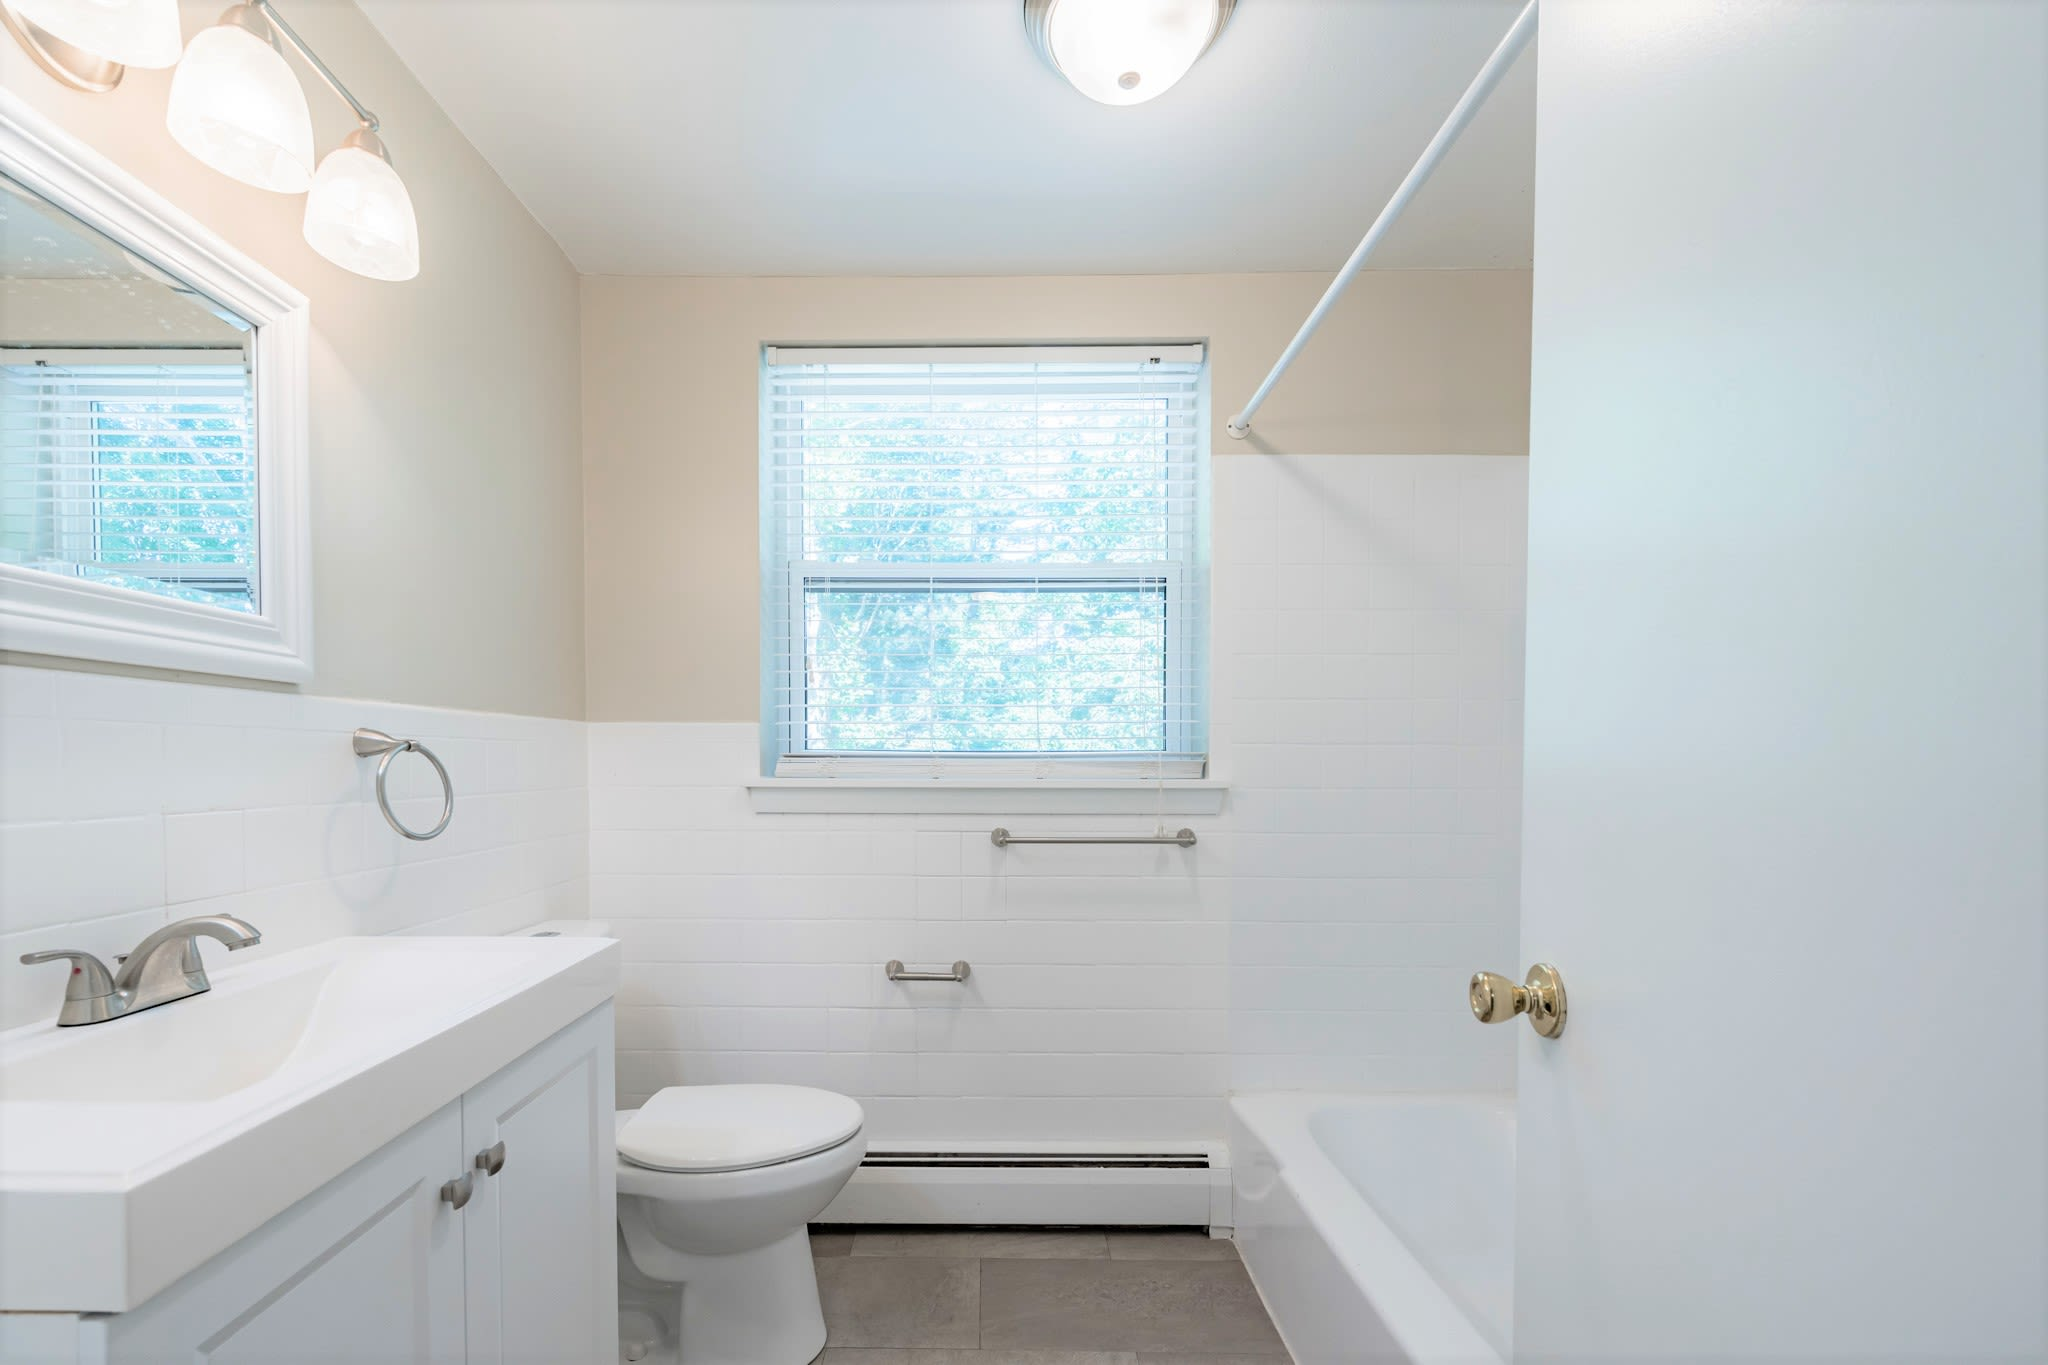 Bathroom with large window for lots of natural light at Eagle Rock Apartments at West Hartford in West Hartford, Connecticut